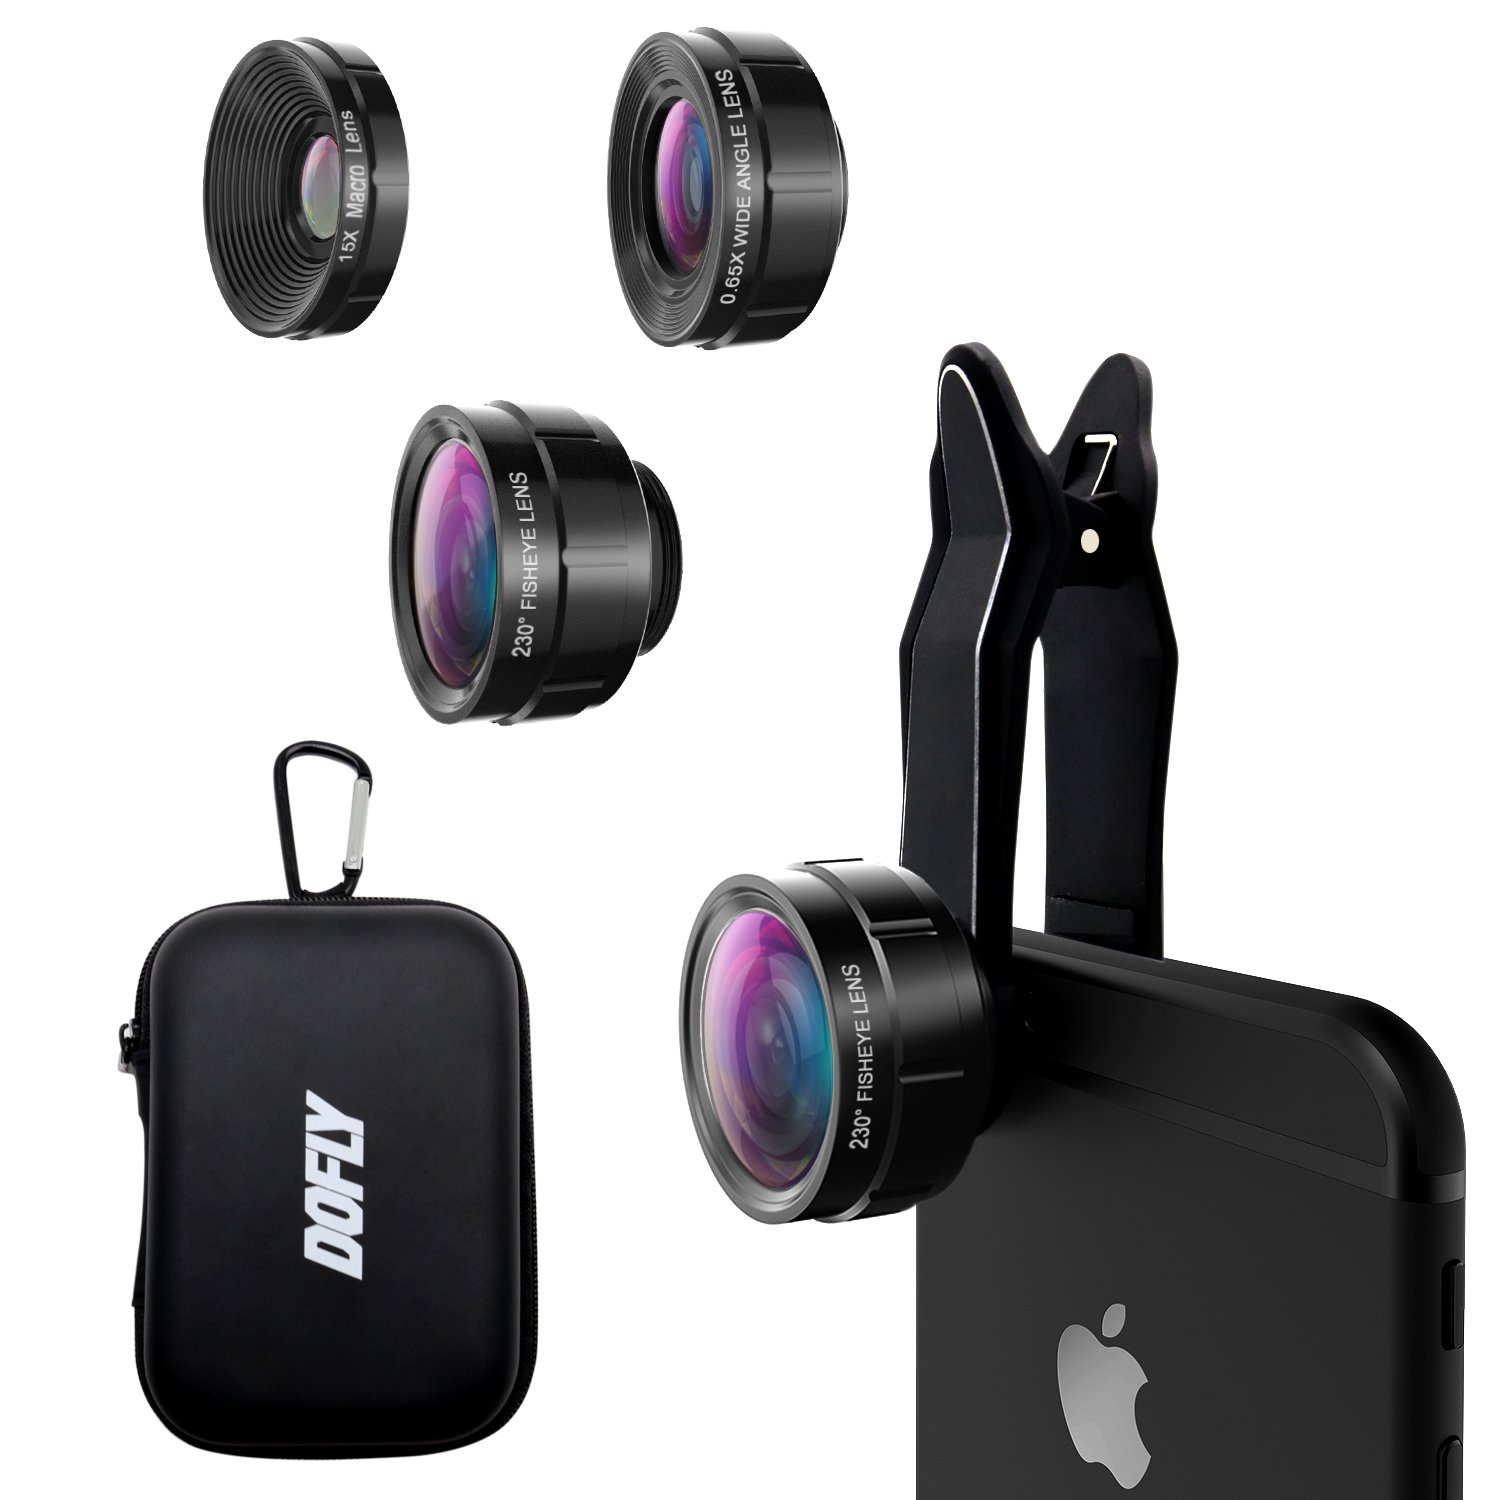 DOFLY Universal Professional HD Camera Lens Kit for iPhone 7 / 6s Plus / 6s / 5s and other devices, Cellphone (230 Degree Fisheye Lens, 0.65x Super Wide Angle Lens, 15x Super Macro Lens) (Black)